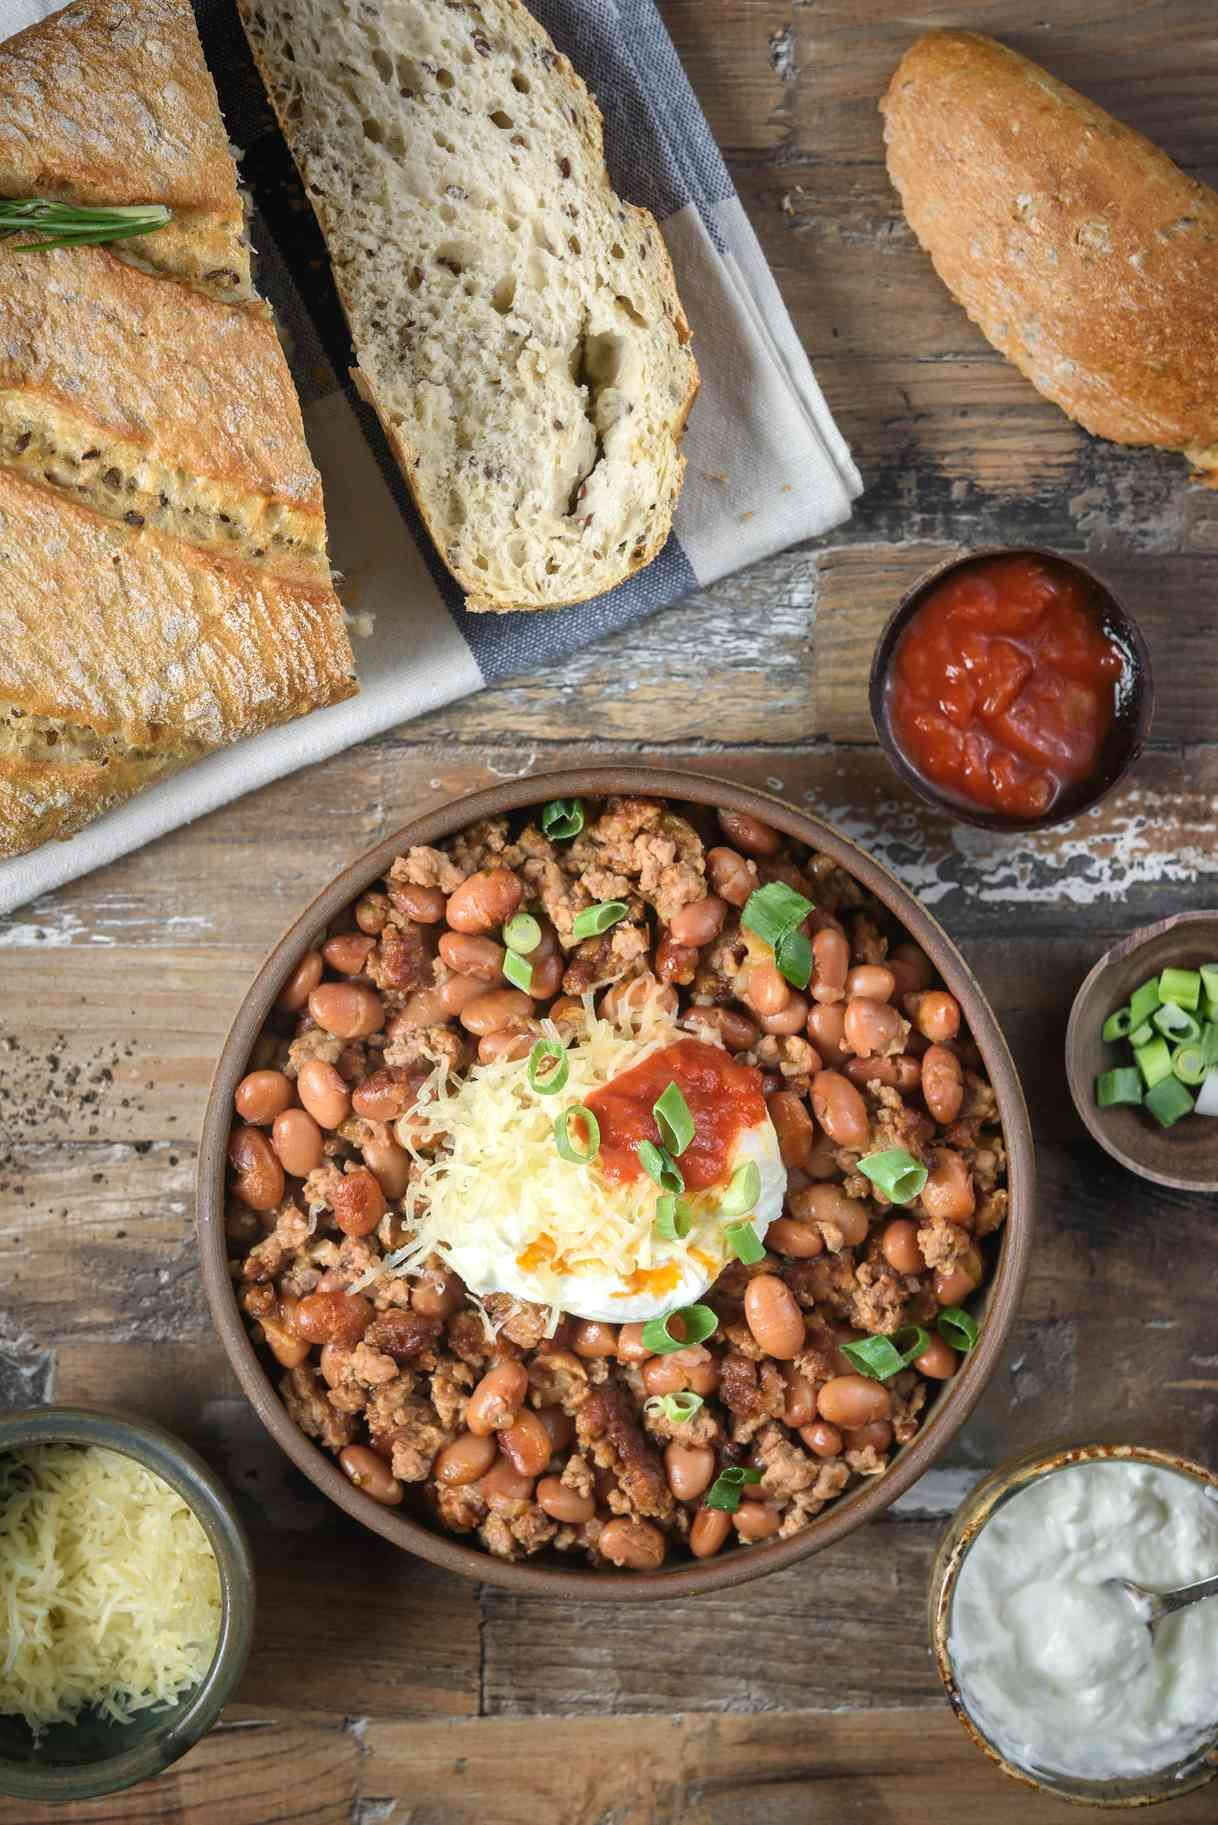 Crock Pot Chili Beans With Ground Beef Recipe In 2020 Ground Beef Slow Cooker Chili Crockpot